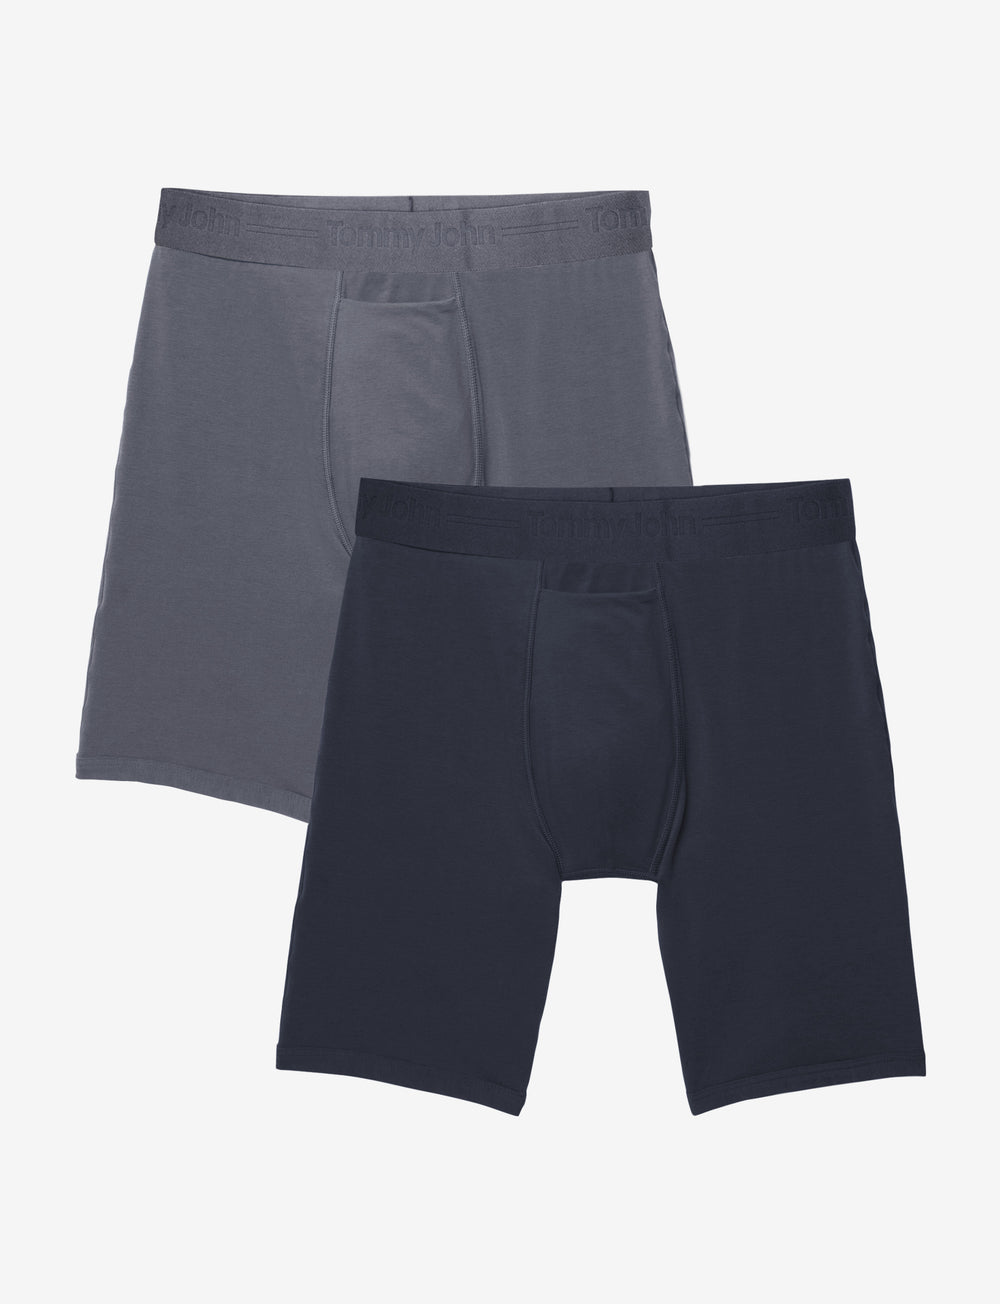 Cotton Basics Boxer Brief 2 Pack Details Image